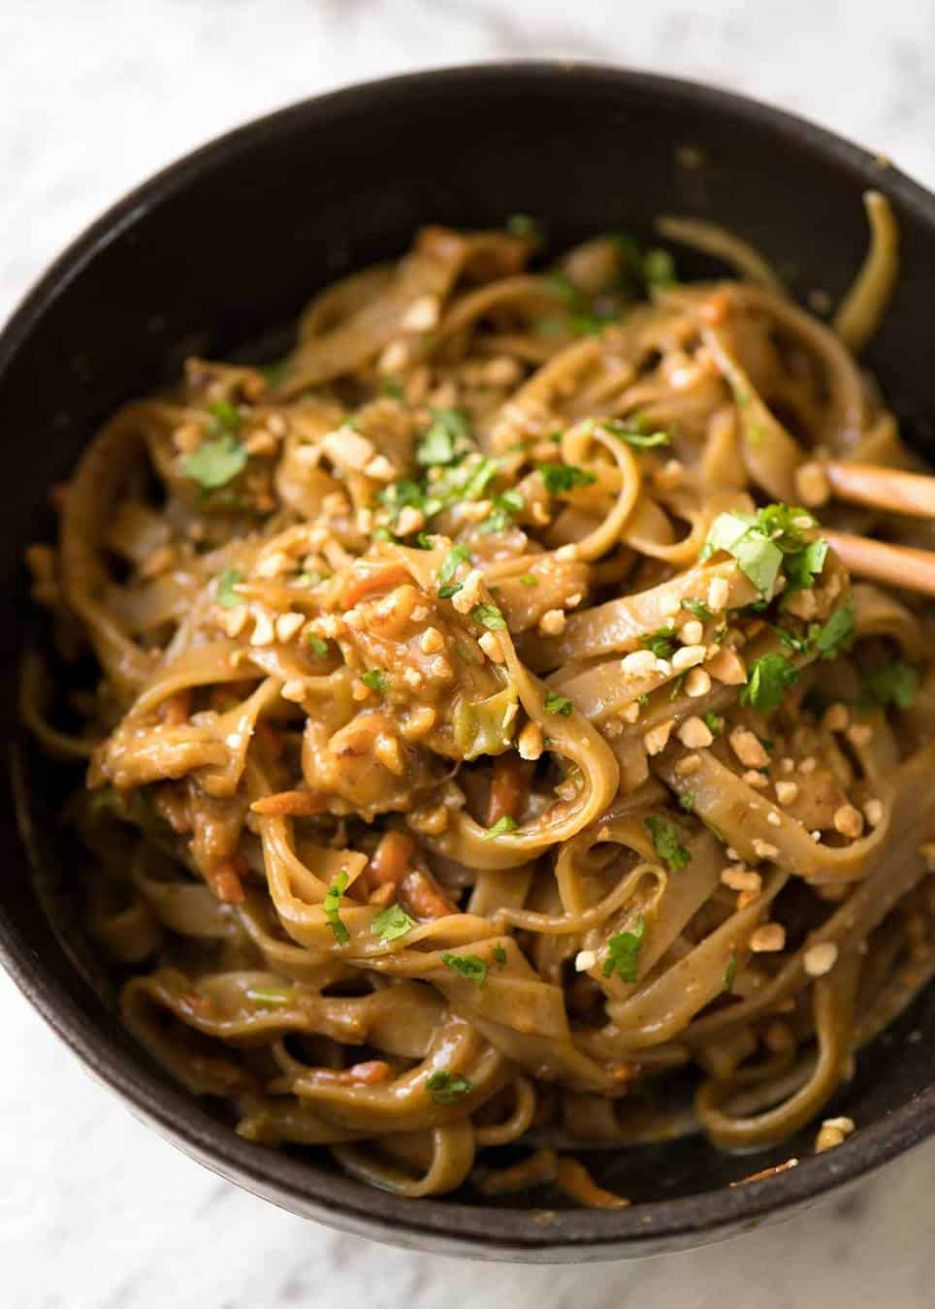 Stir Fried Noodles with Peanut Sauce - Recipes Rice Noodles Peanut Sauce